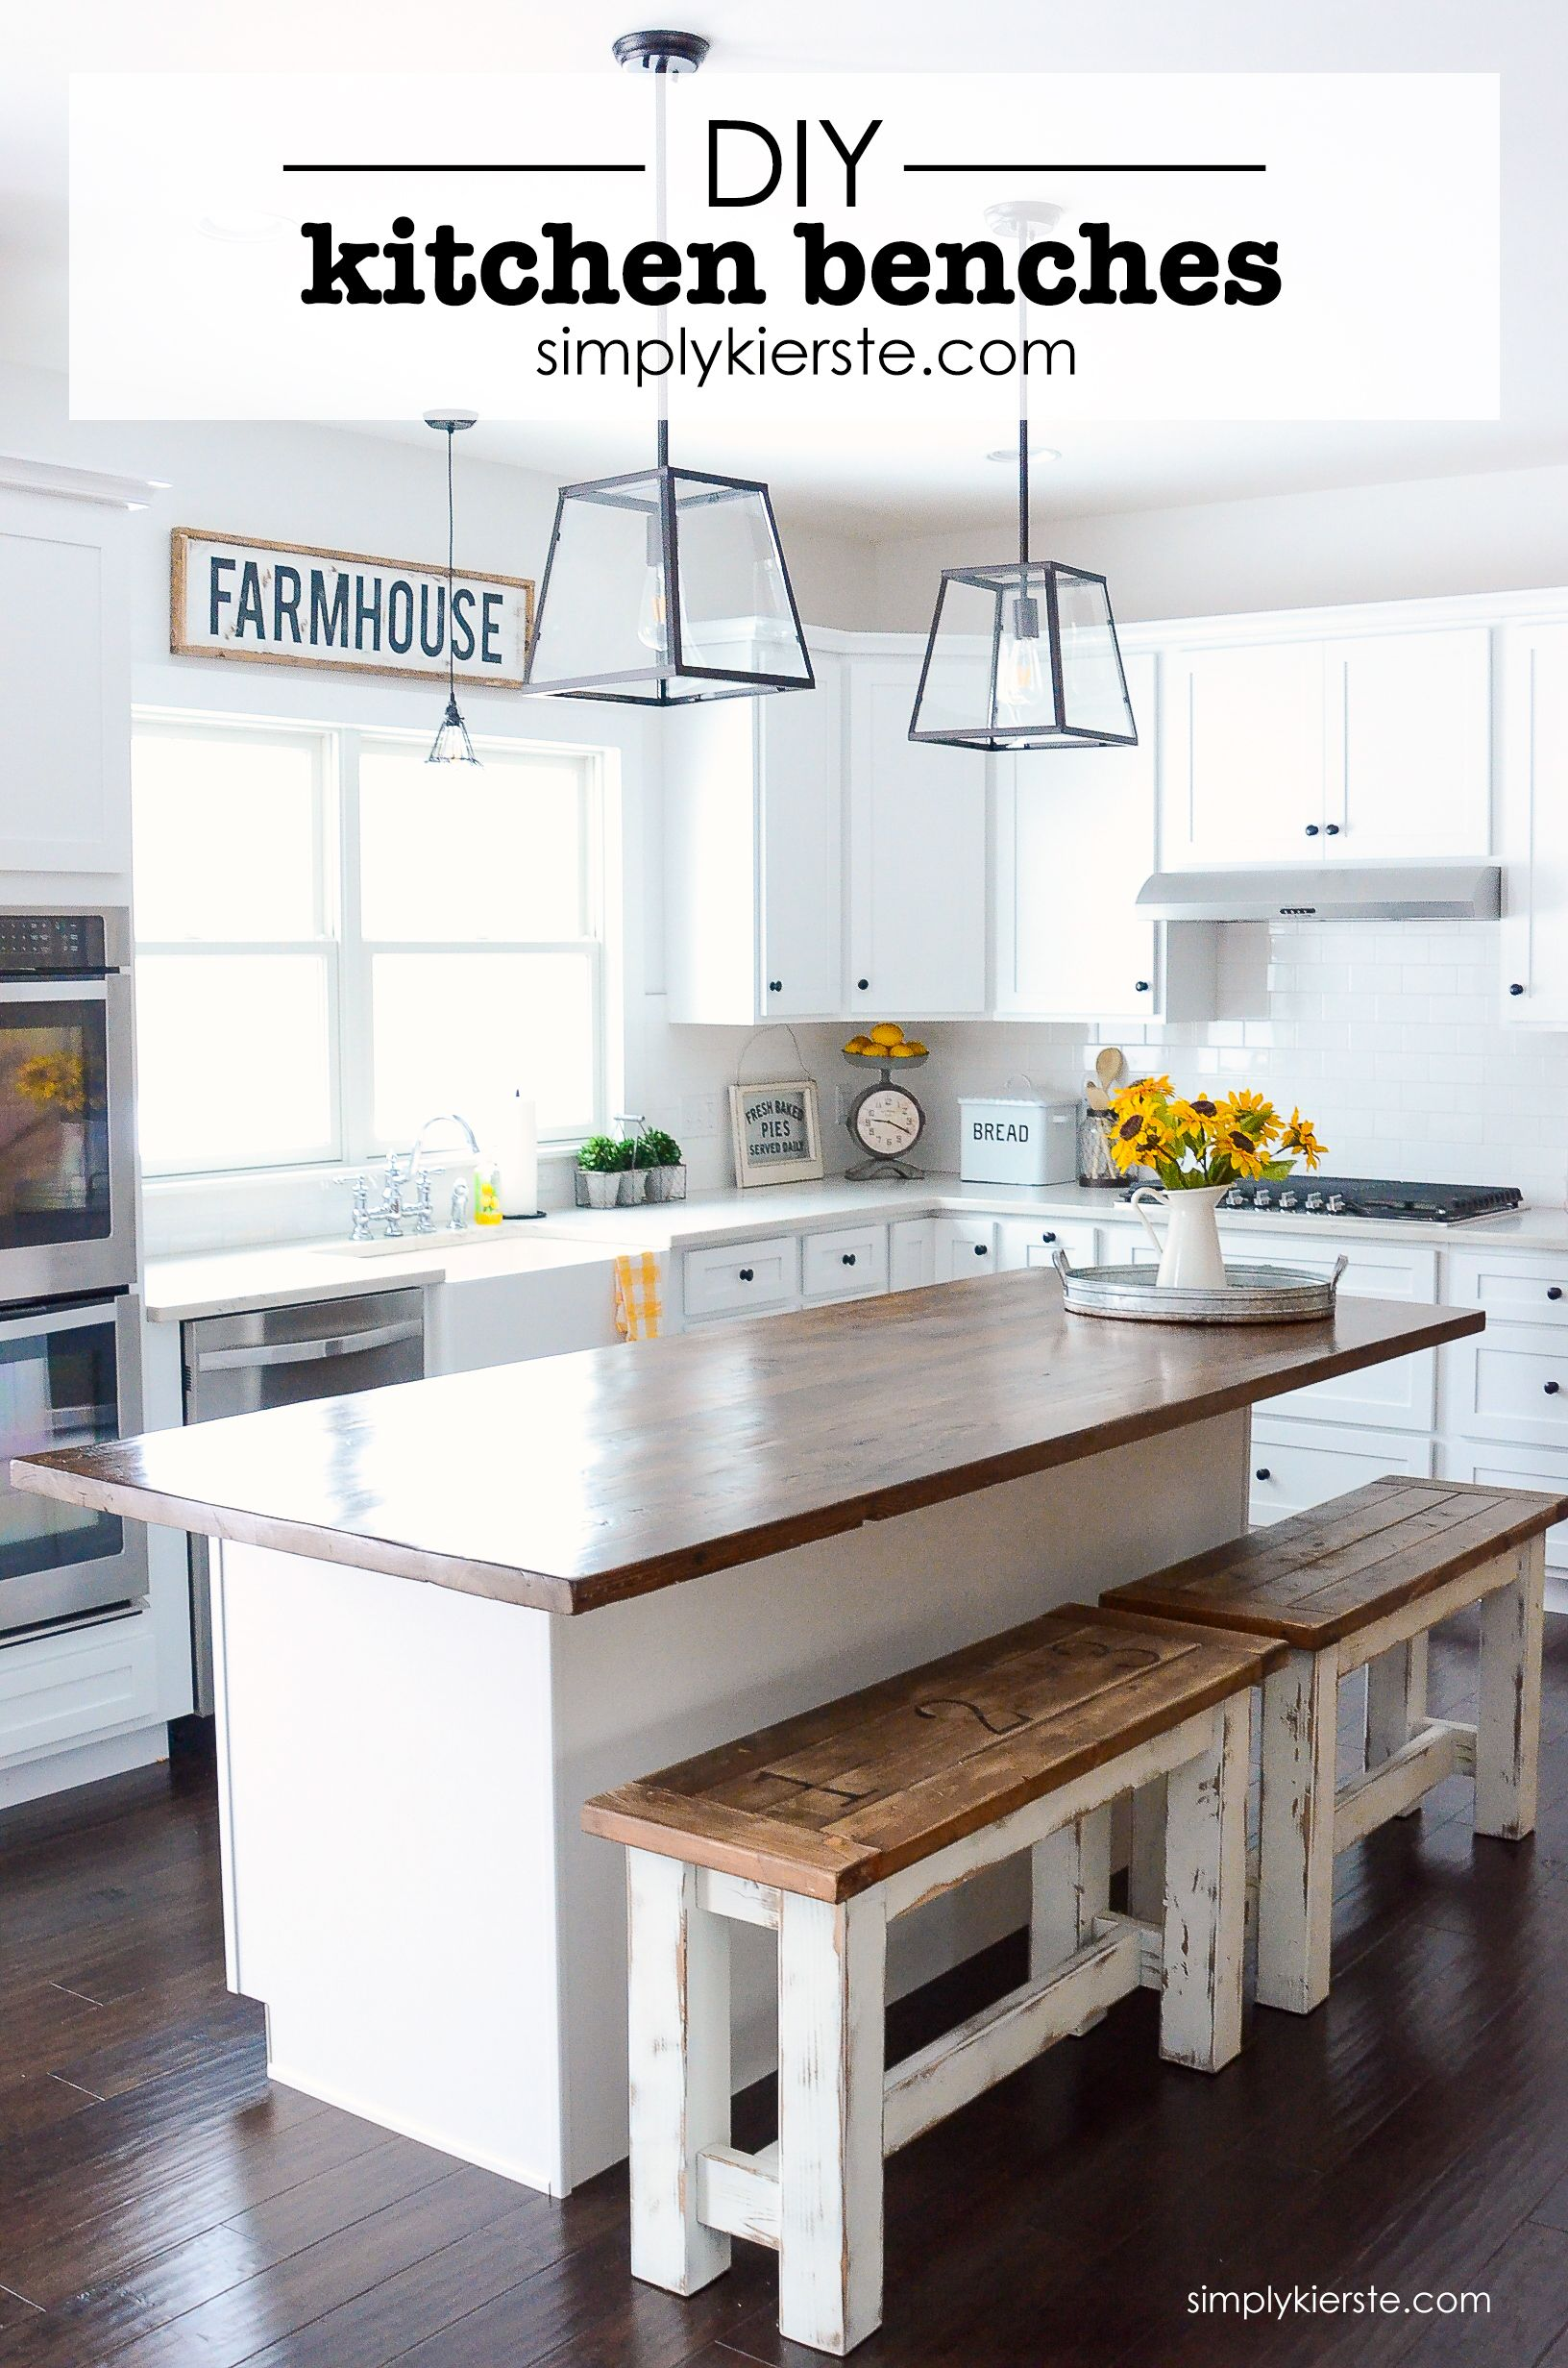 7 Recommended Kitchen Decorating Themes For Perfecting: Bloggers' Fun Family Projects